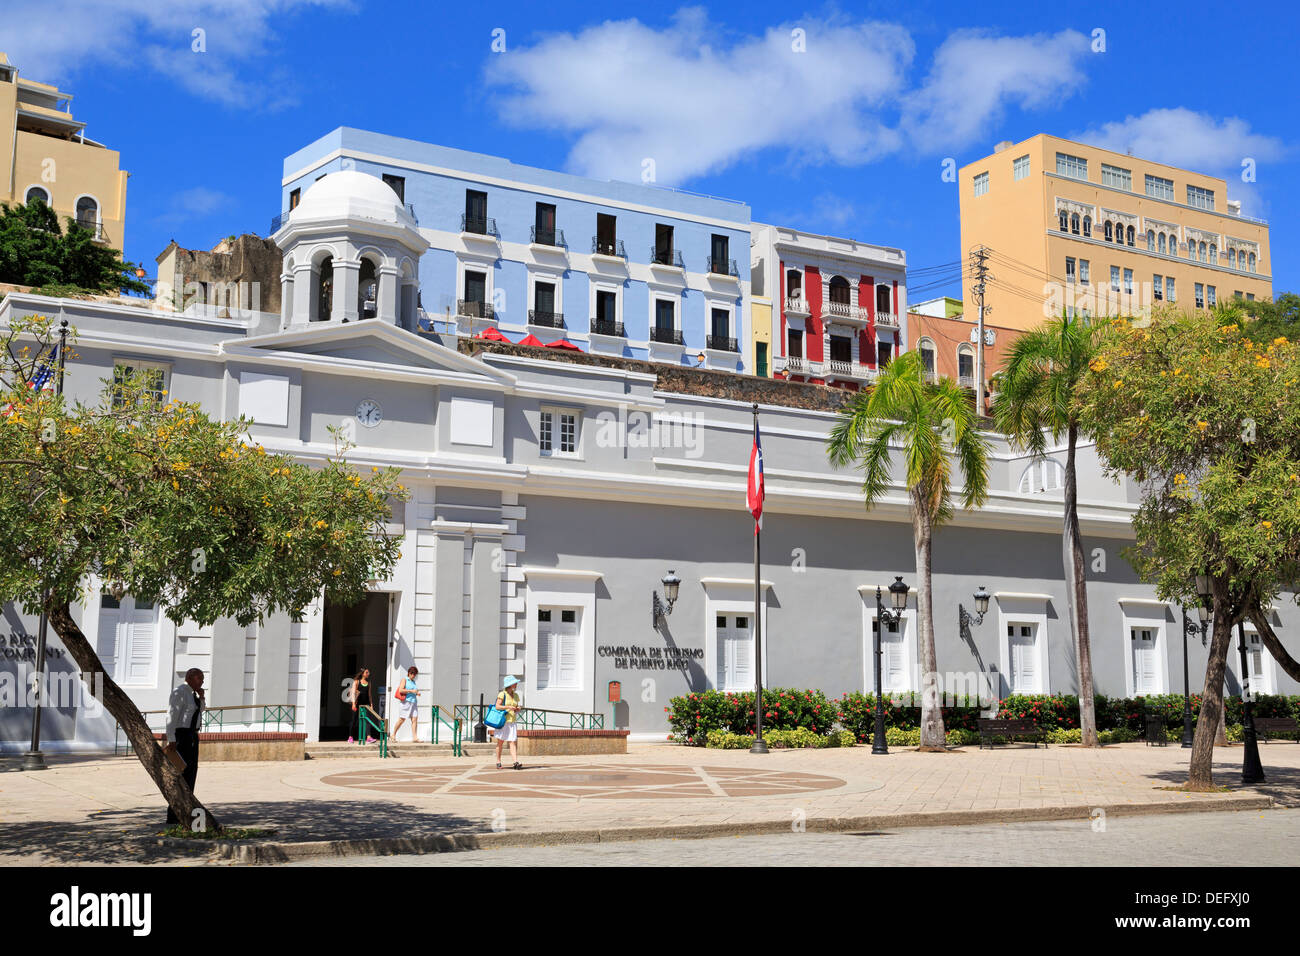 Old Penitentiary in Old San Juan, Puerto Rico, West Indies, Caribbean, Central America - Stock Image